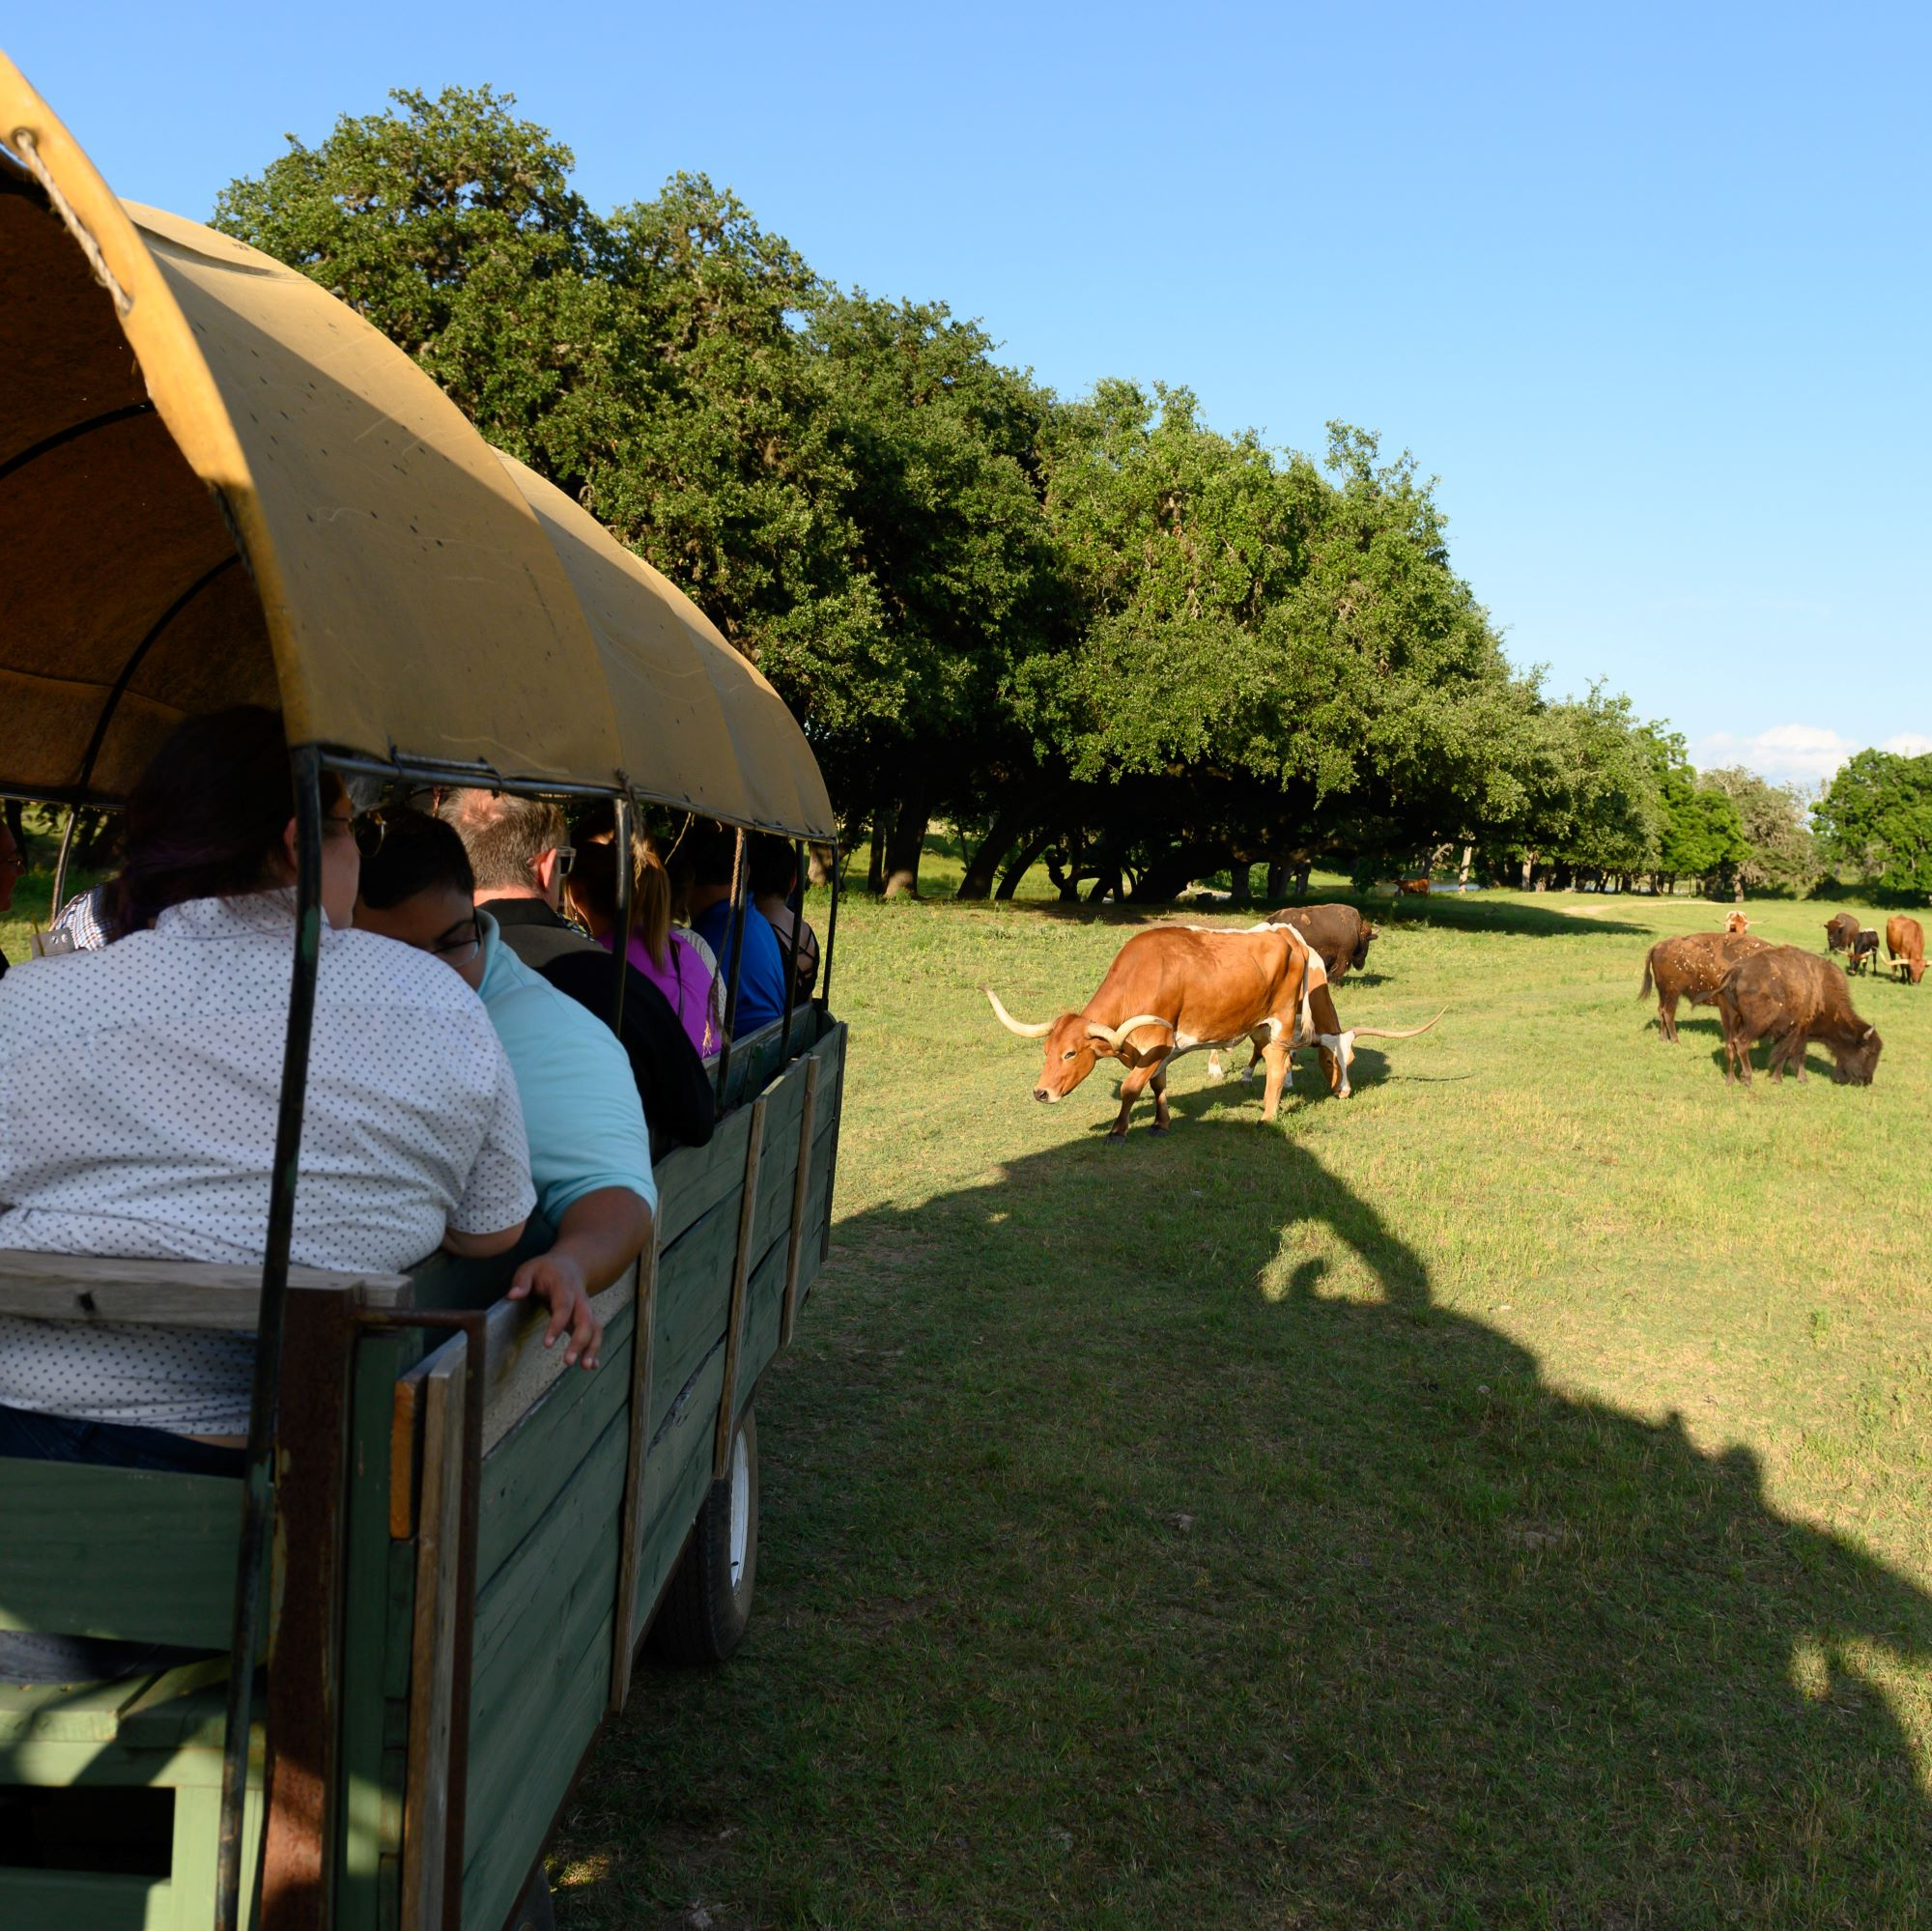 San Antonio Team Building Retreat Corporate Event Venue Covered Wagon Ride Activity